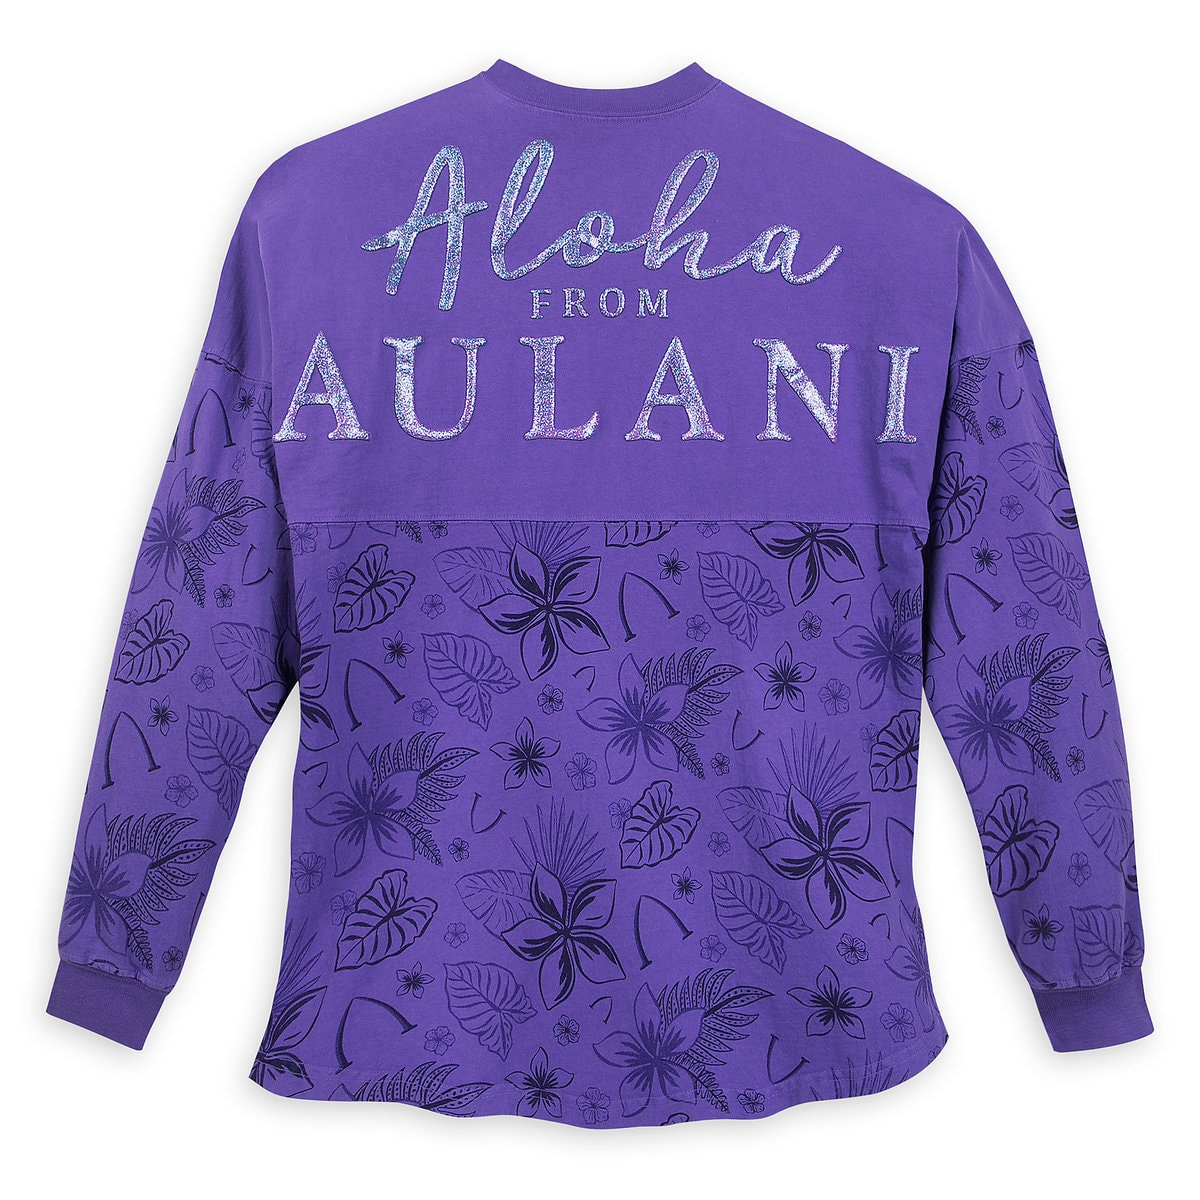 f5184c7ac Product Image of Aulani, A Disney Resort & Spa Spirit Jersey for Adults -  Potion